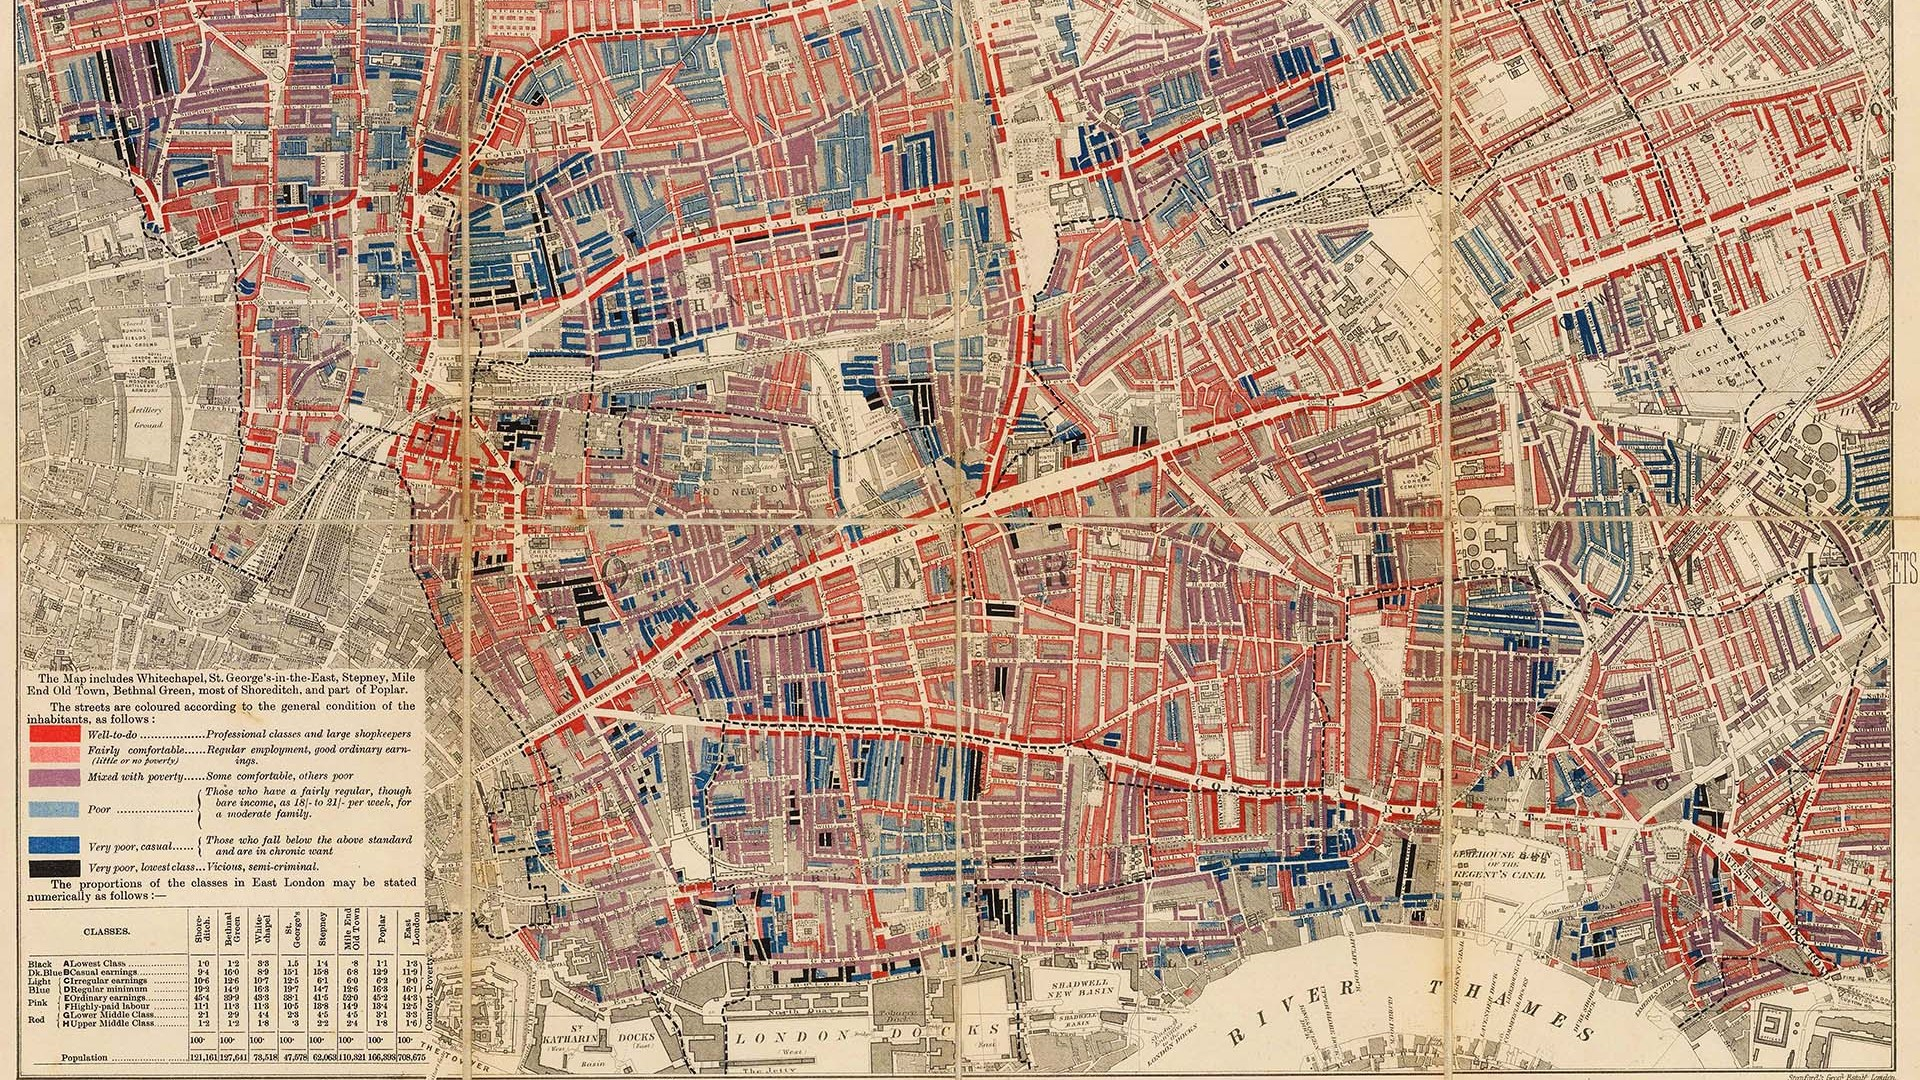 Charles Booth: Descriptive Map of East End Poverty